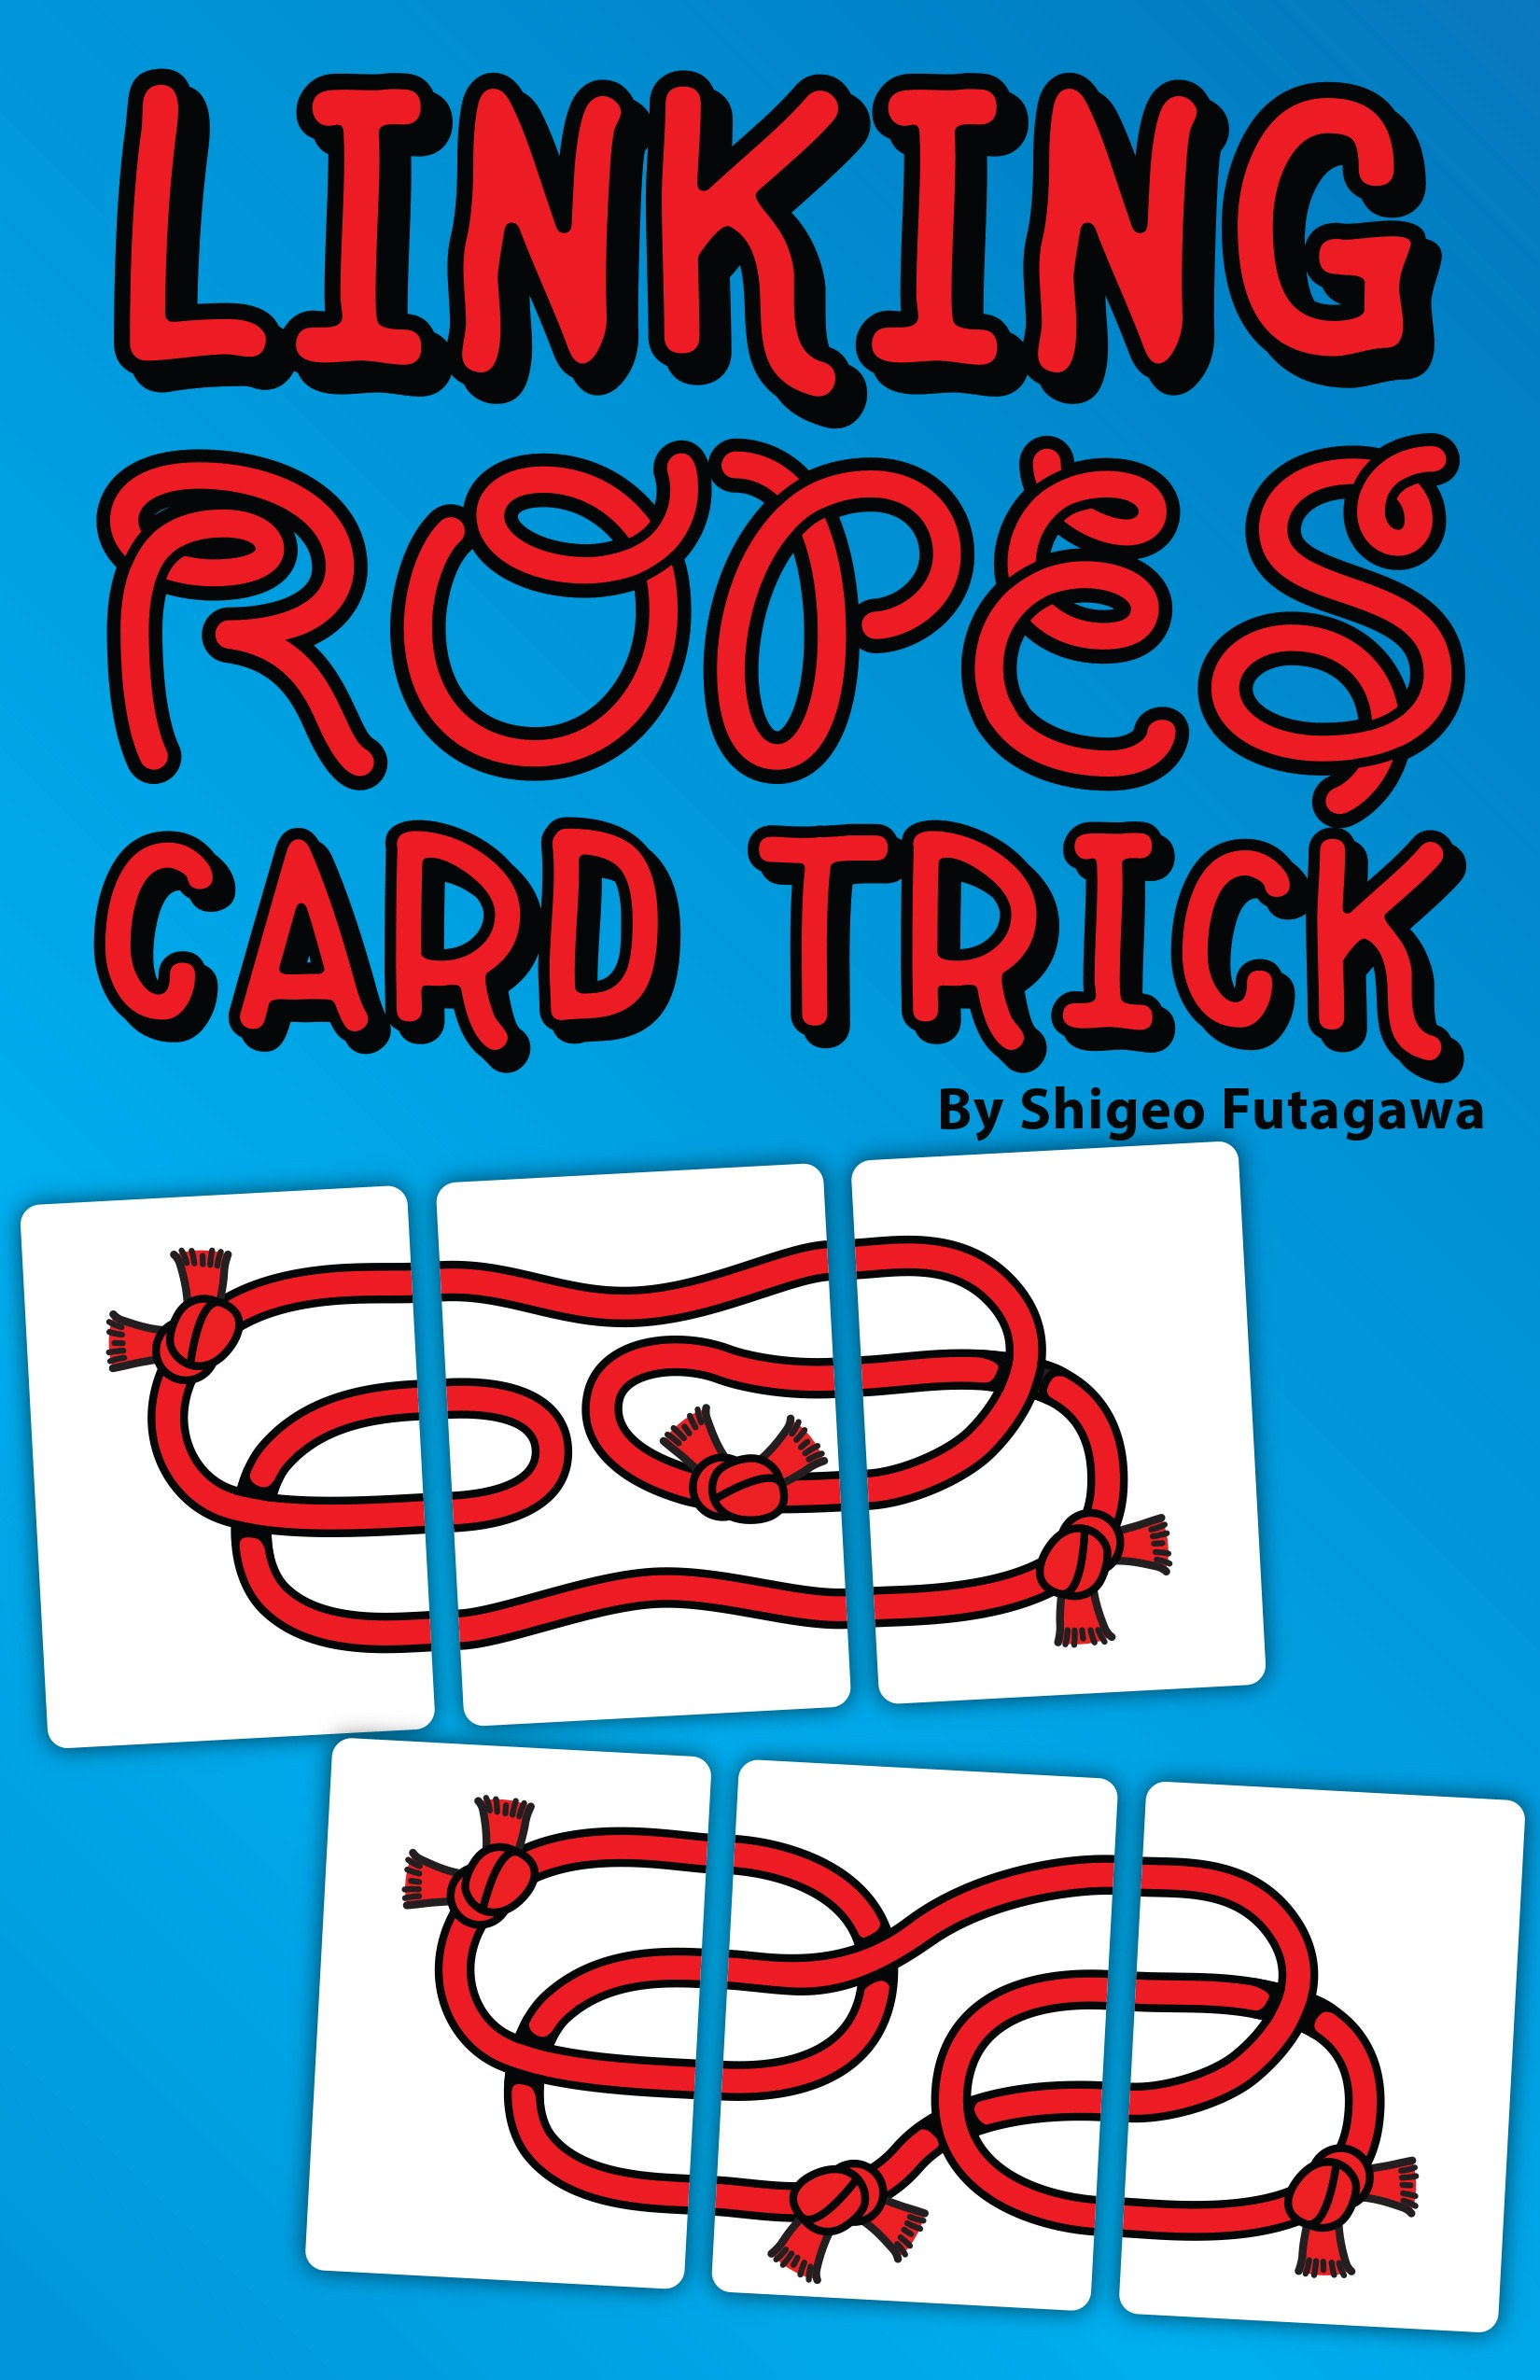 Linking Rope card trick